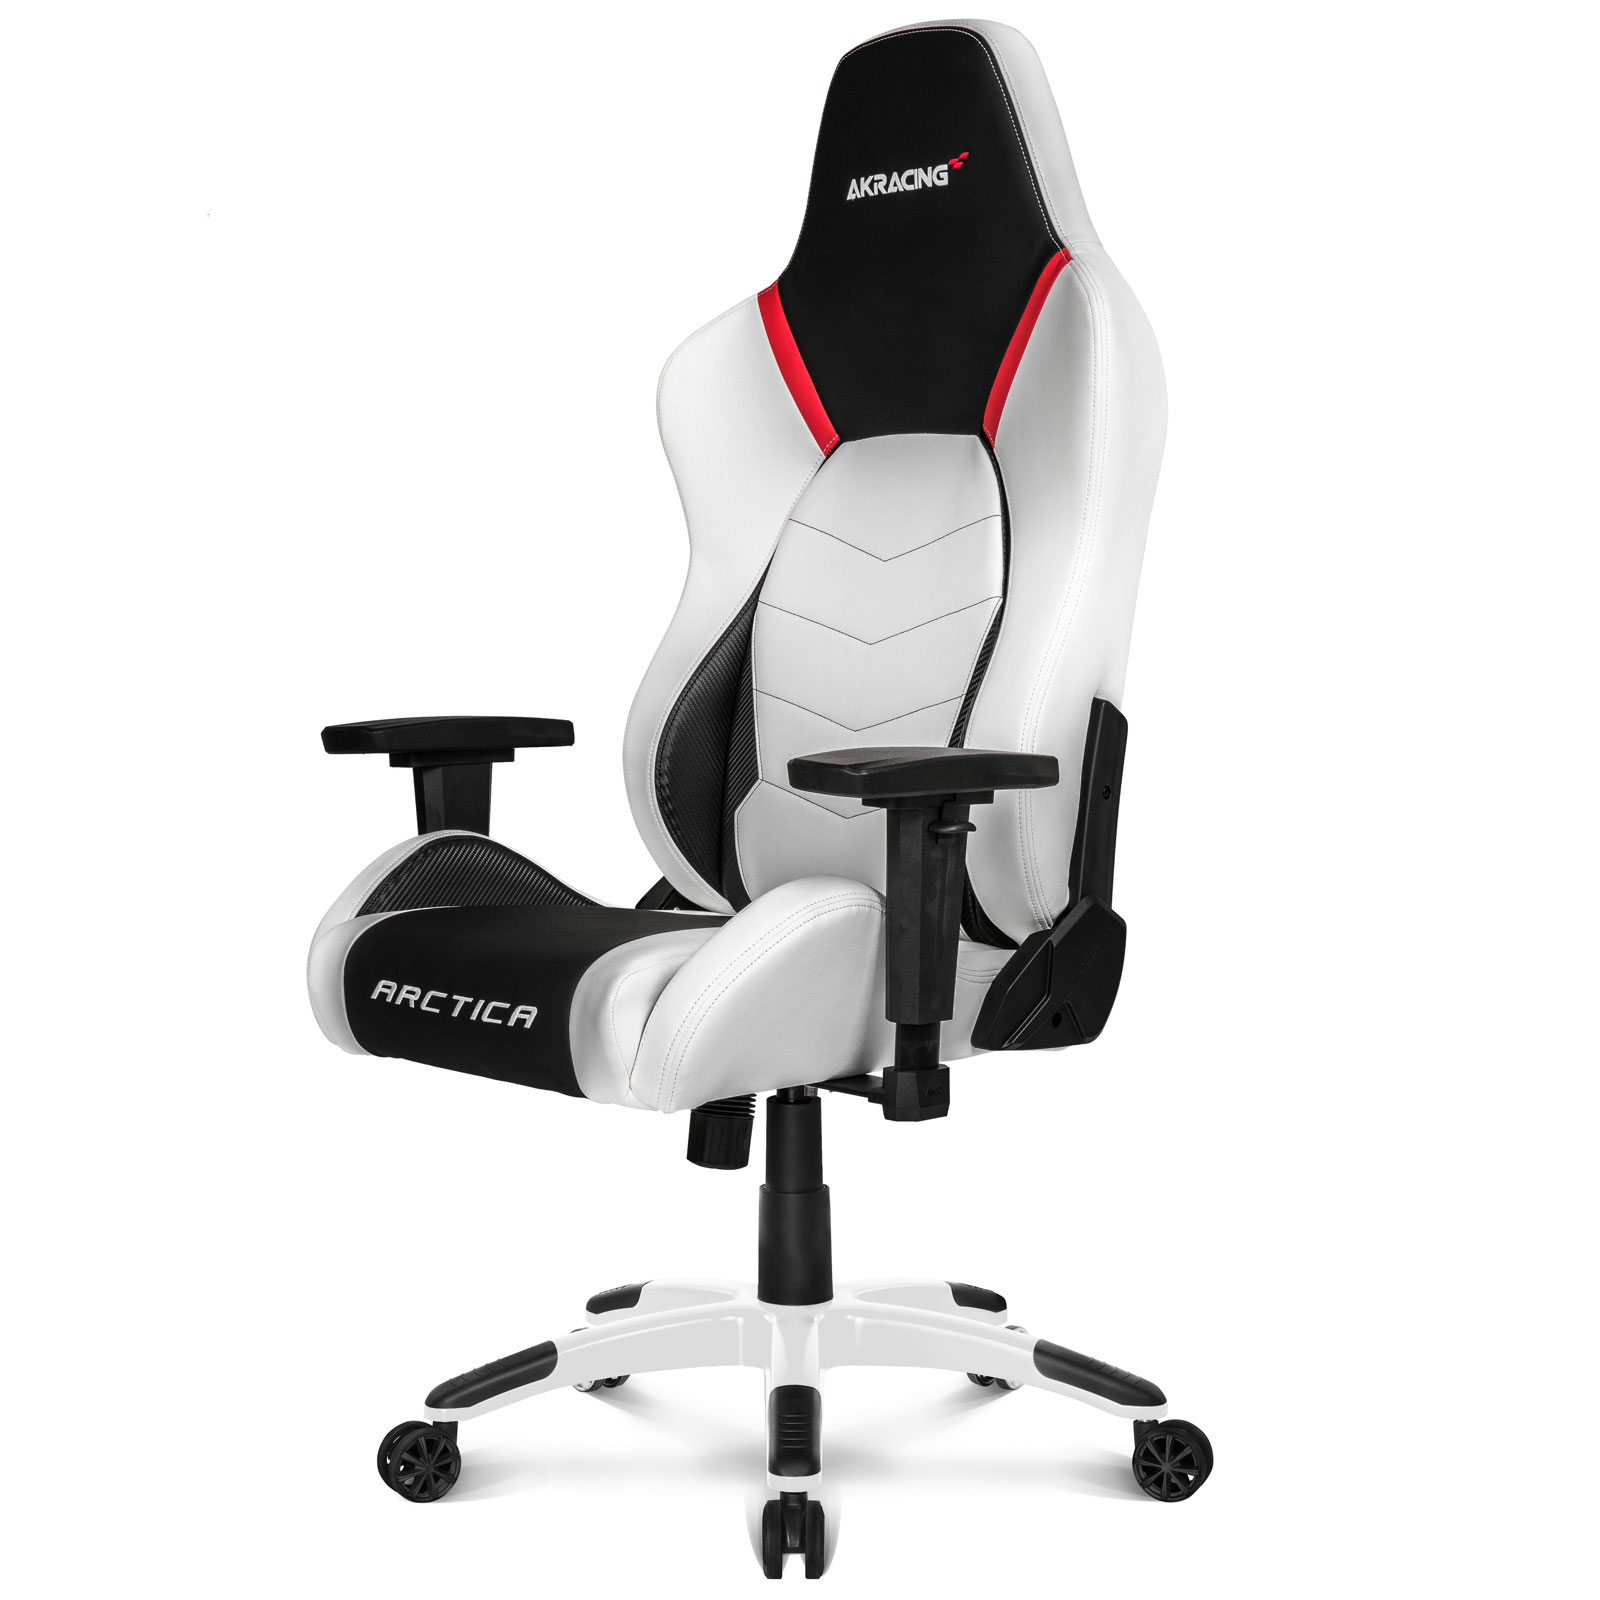 Gamer Sessel 150 Kg Akracing Arctica Fauteuil Gamer Akracing Sur Ldlc